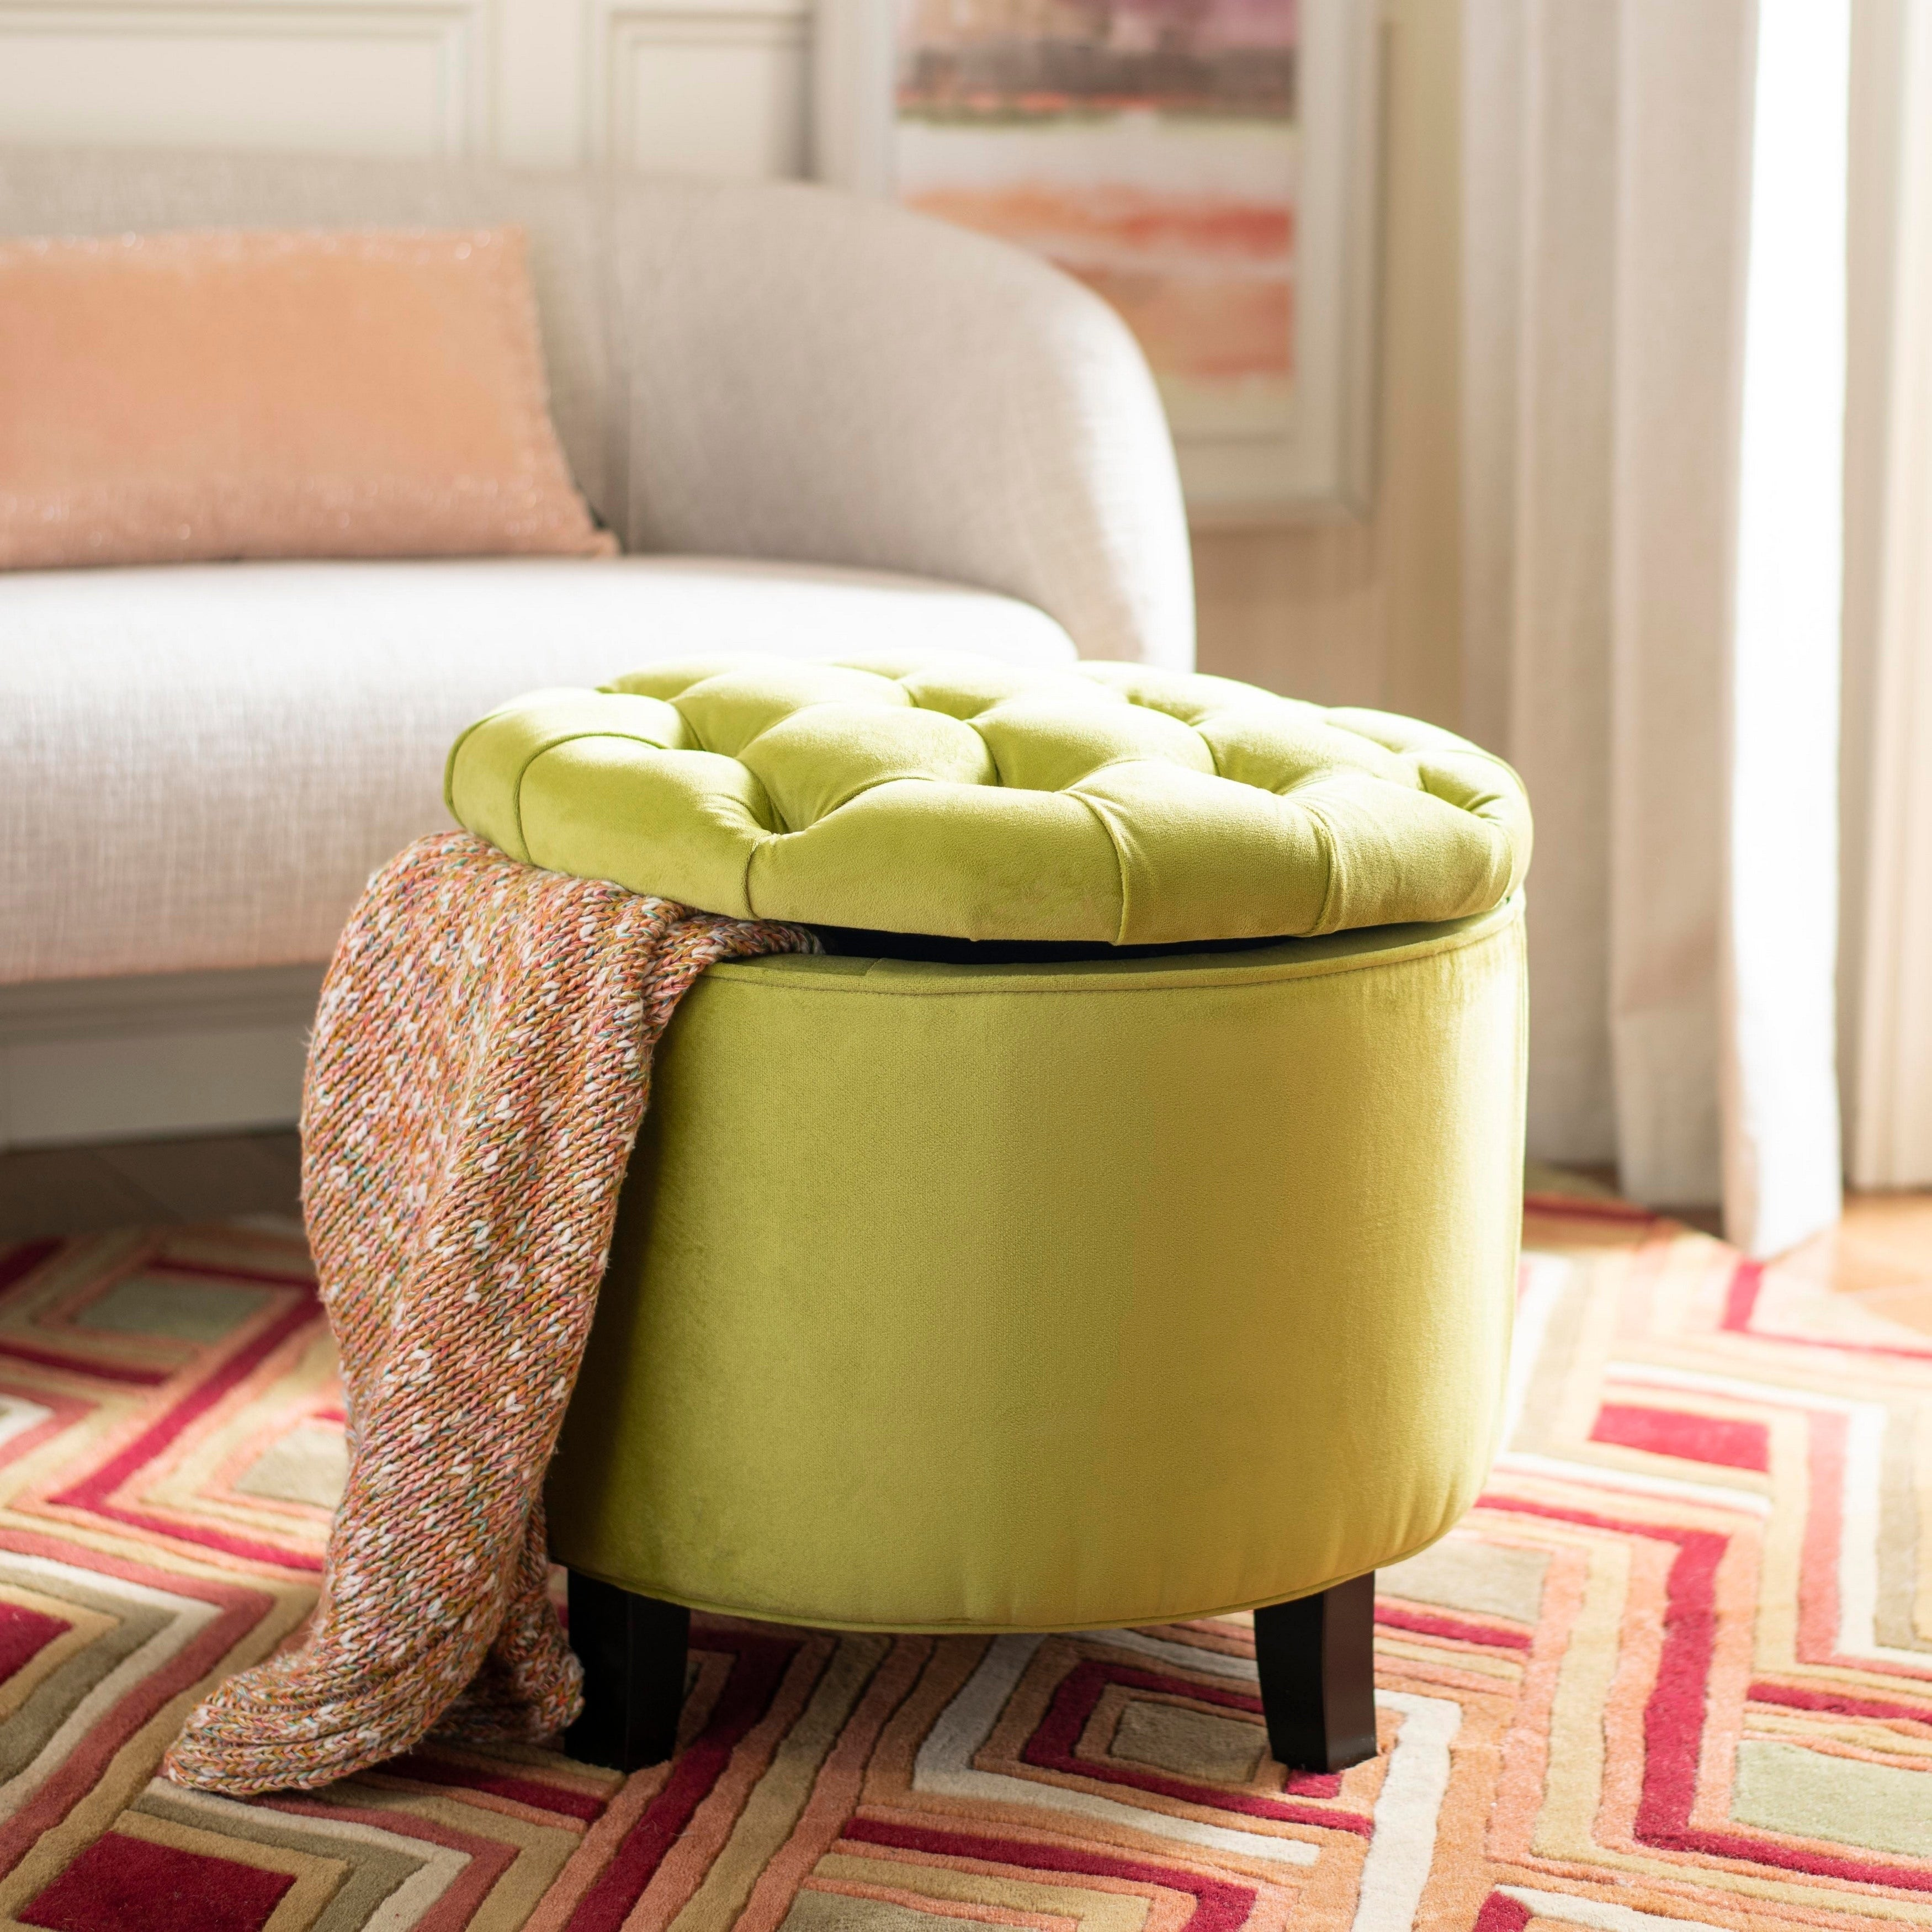 Admirable Safavieh Amelia Asparagus Tufted Storage Ottoman Gmtry Best Dining Table And Chair Ideas Images Gmtryco